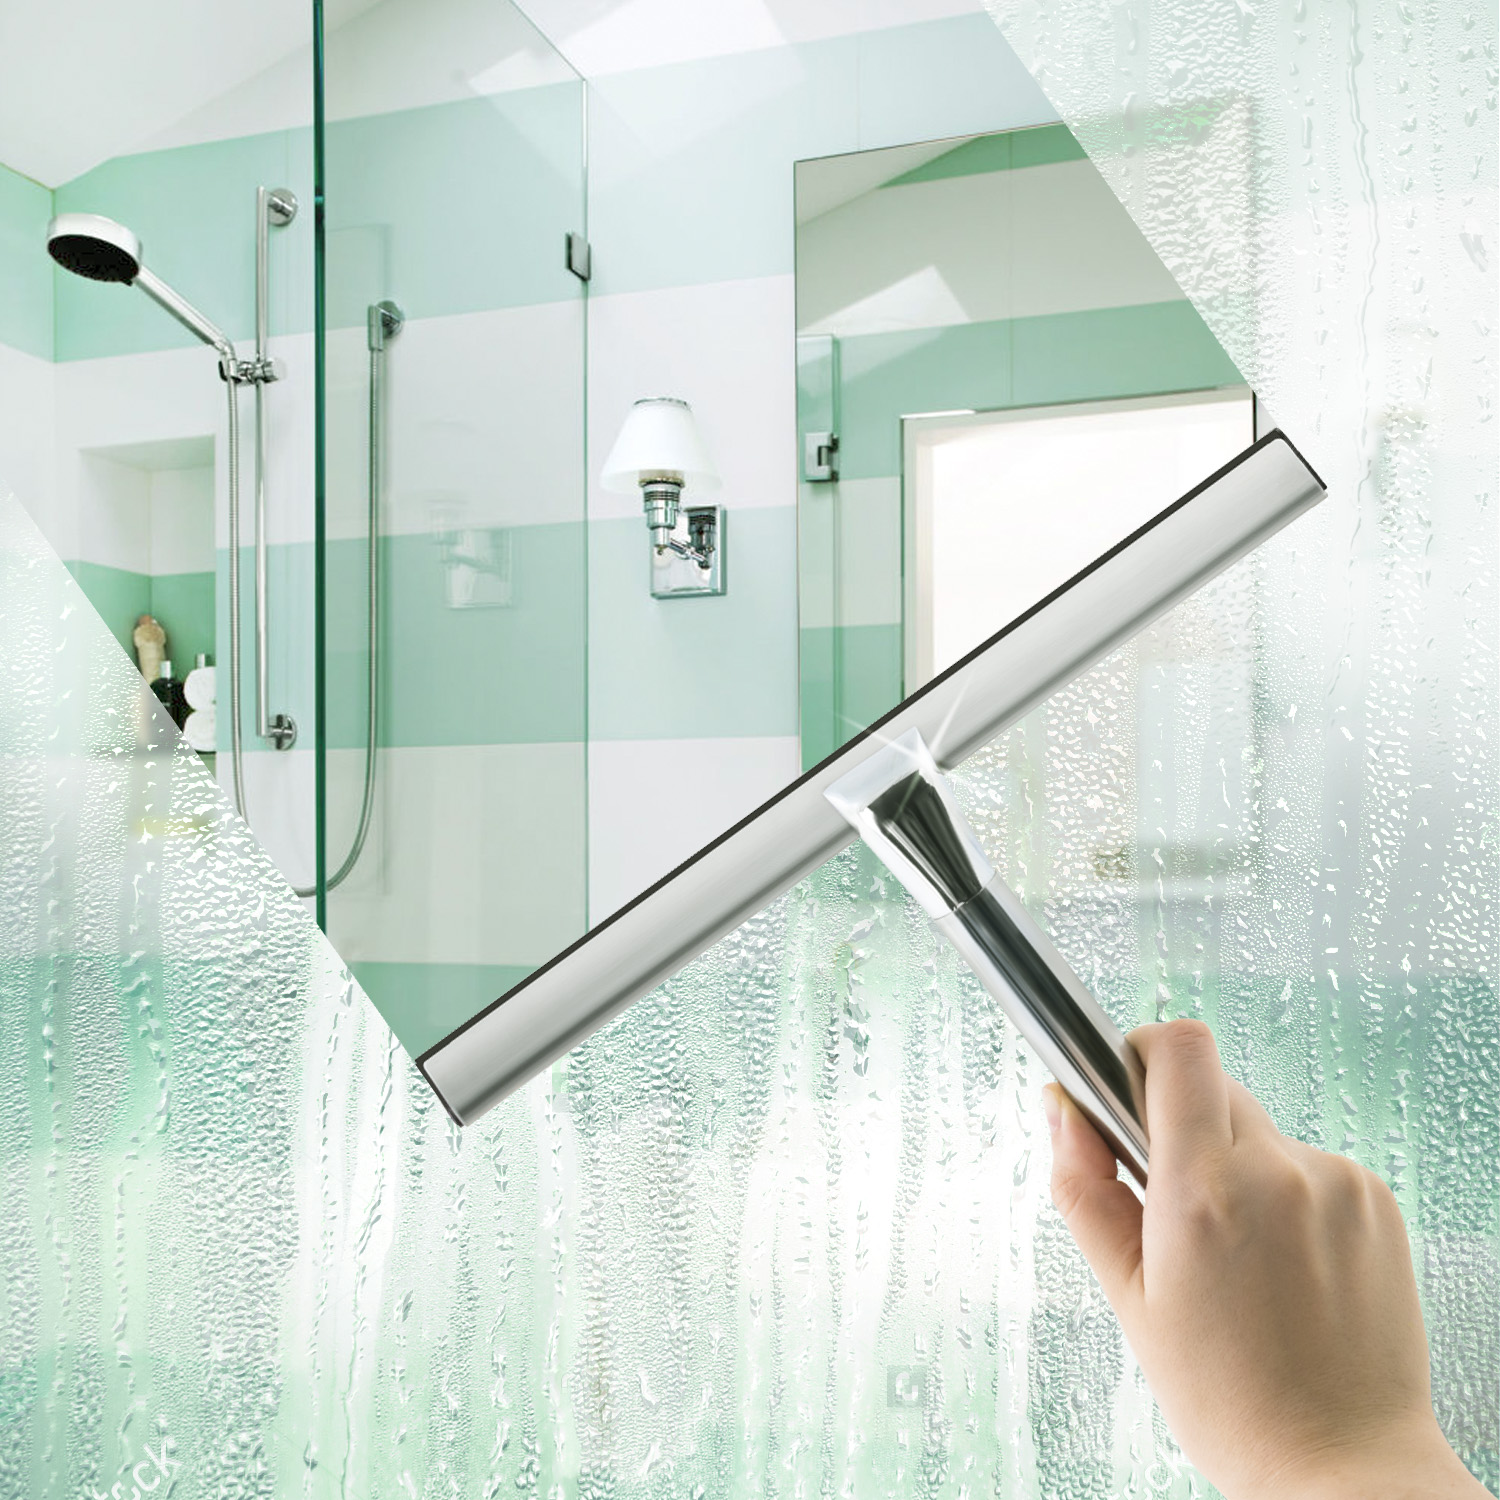 Art Moon Clean Shower Mirror Window Gl Squeegee Good Grip Stainless Steel With Suction Cup Hook Tatkraft